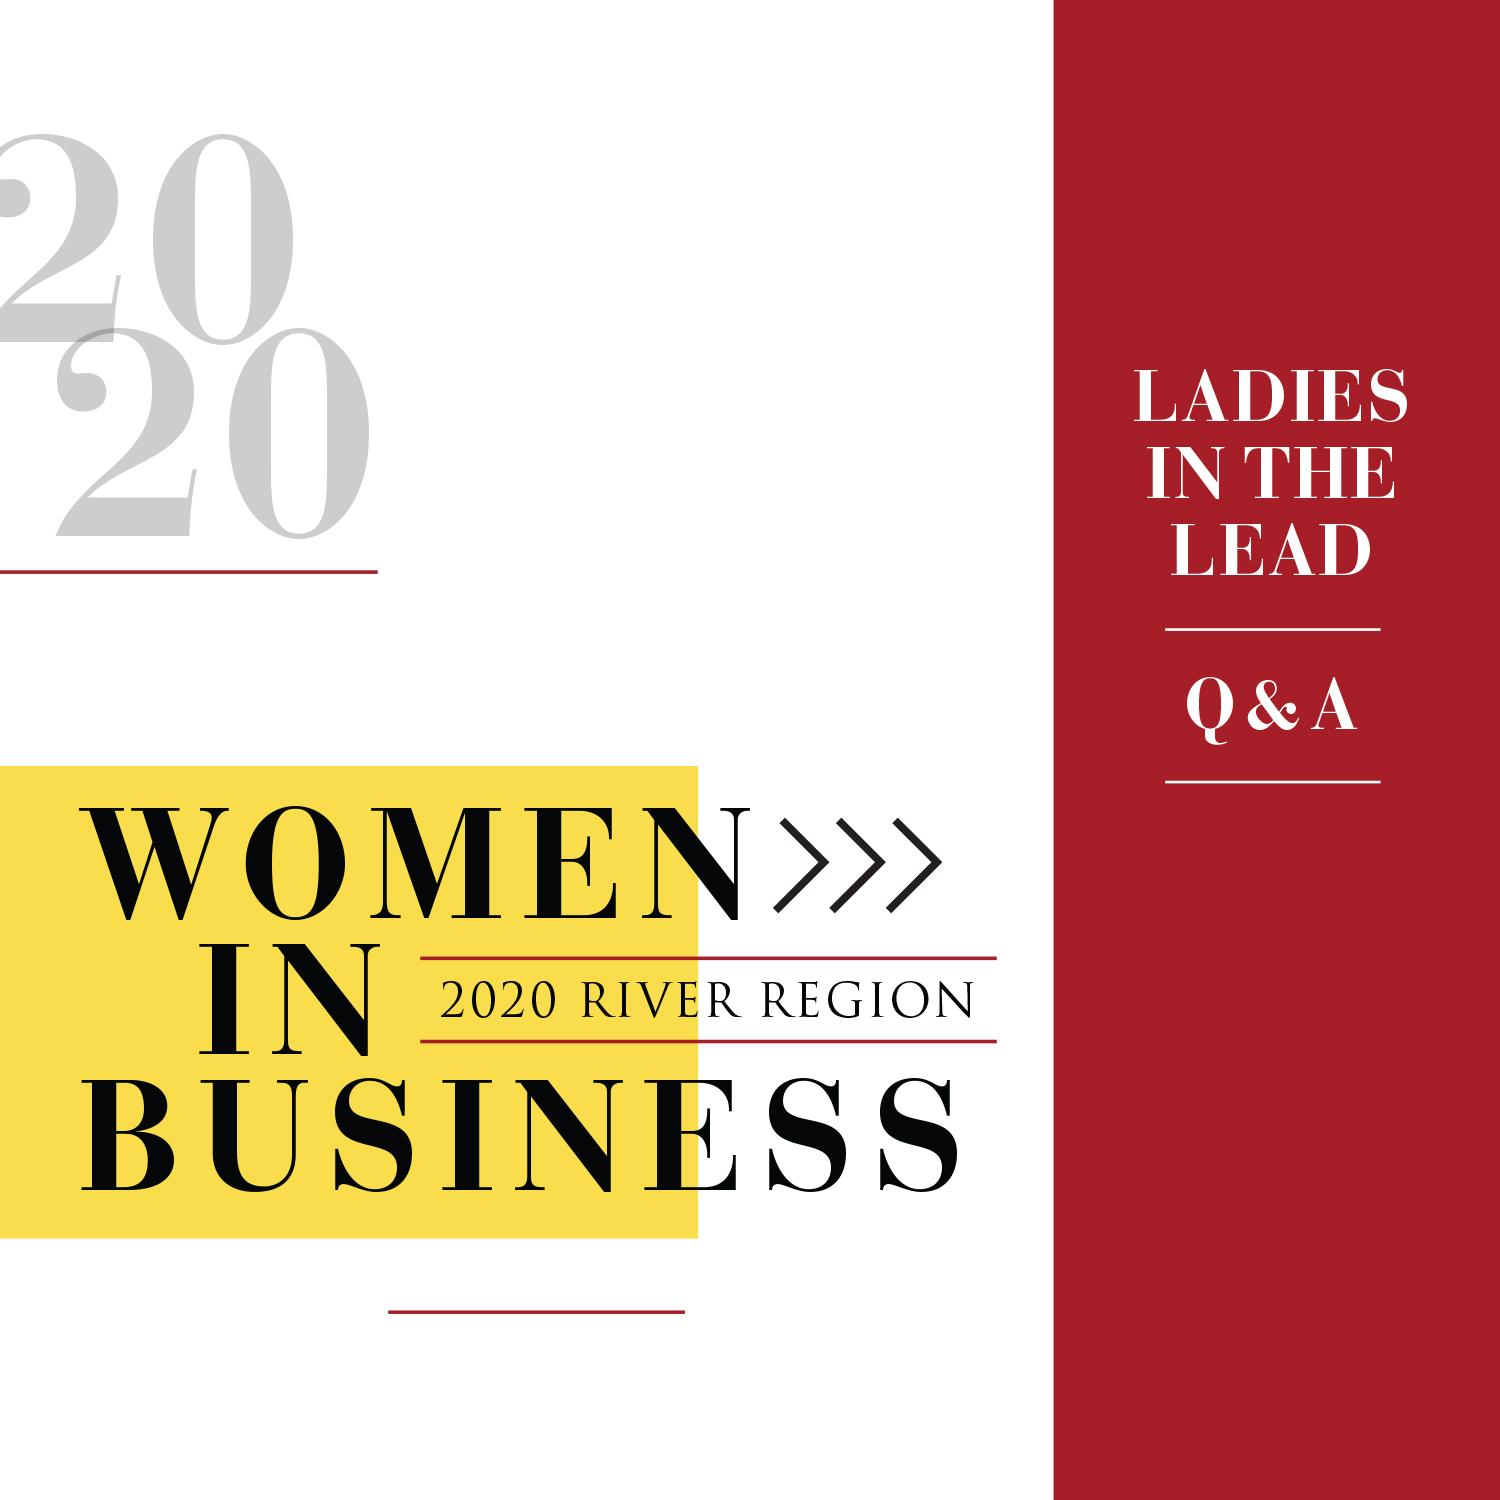 November 2020 MBJ, Montgomery Business Journal, MBJ, Women in Business, River Region, City of Montgomery, Montgomery County, MGM, Ladies in the Lead